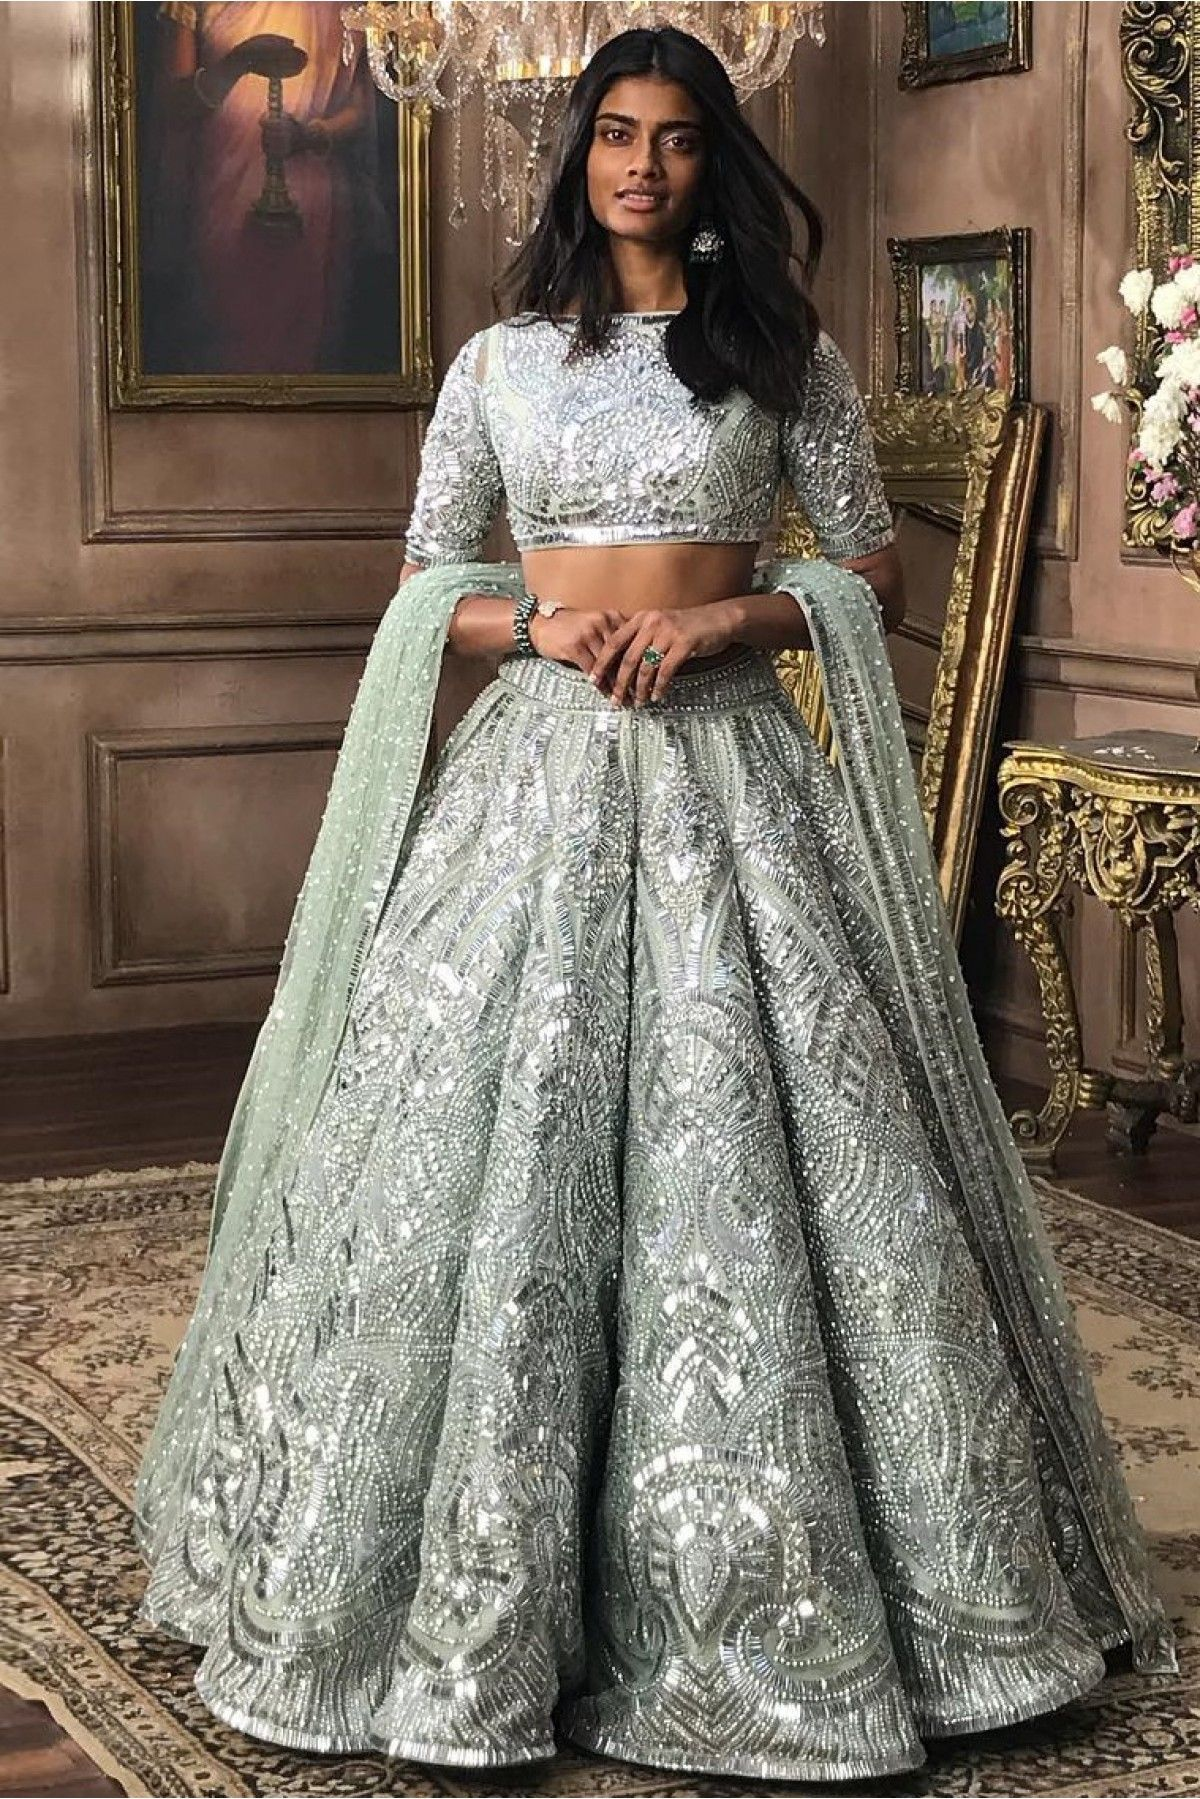 32f18f8e12 Buy Mastani Silk Lehenga Choli In Smoke Blue Colour for women @  ninecolours.com. Customize Tailoring available!